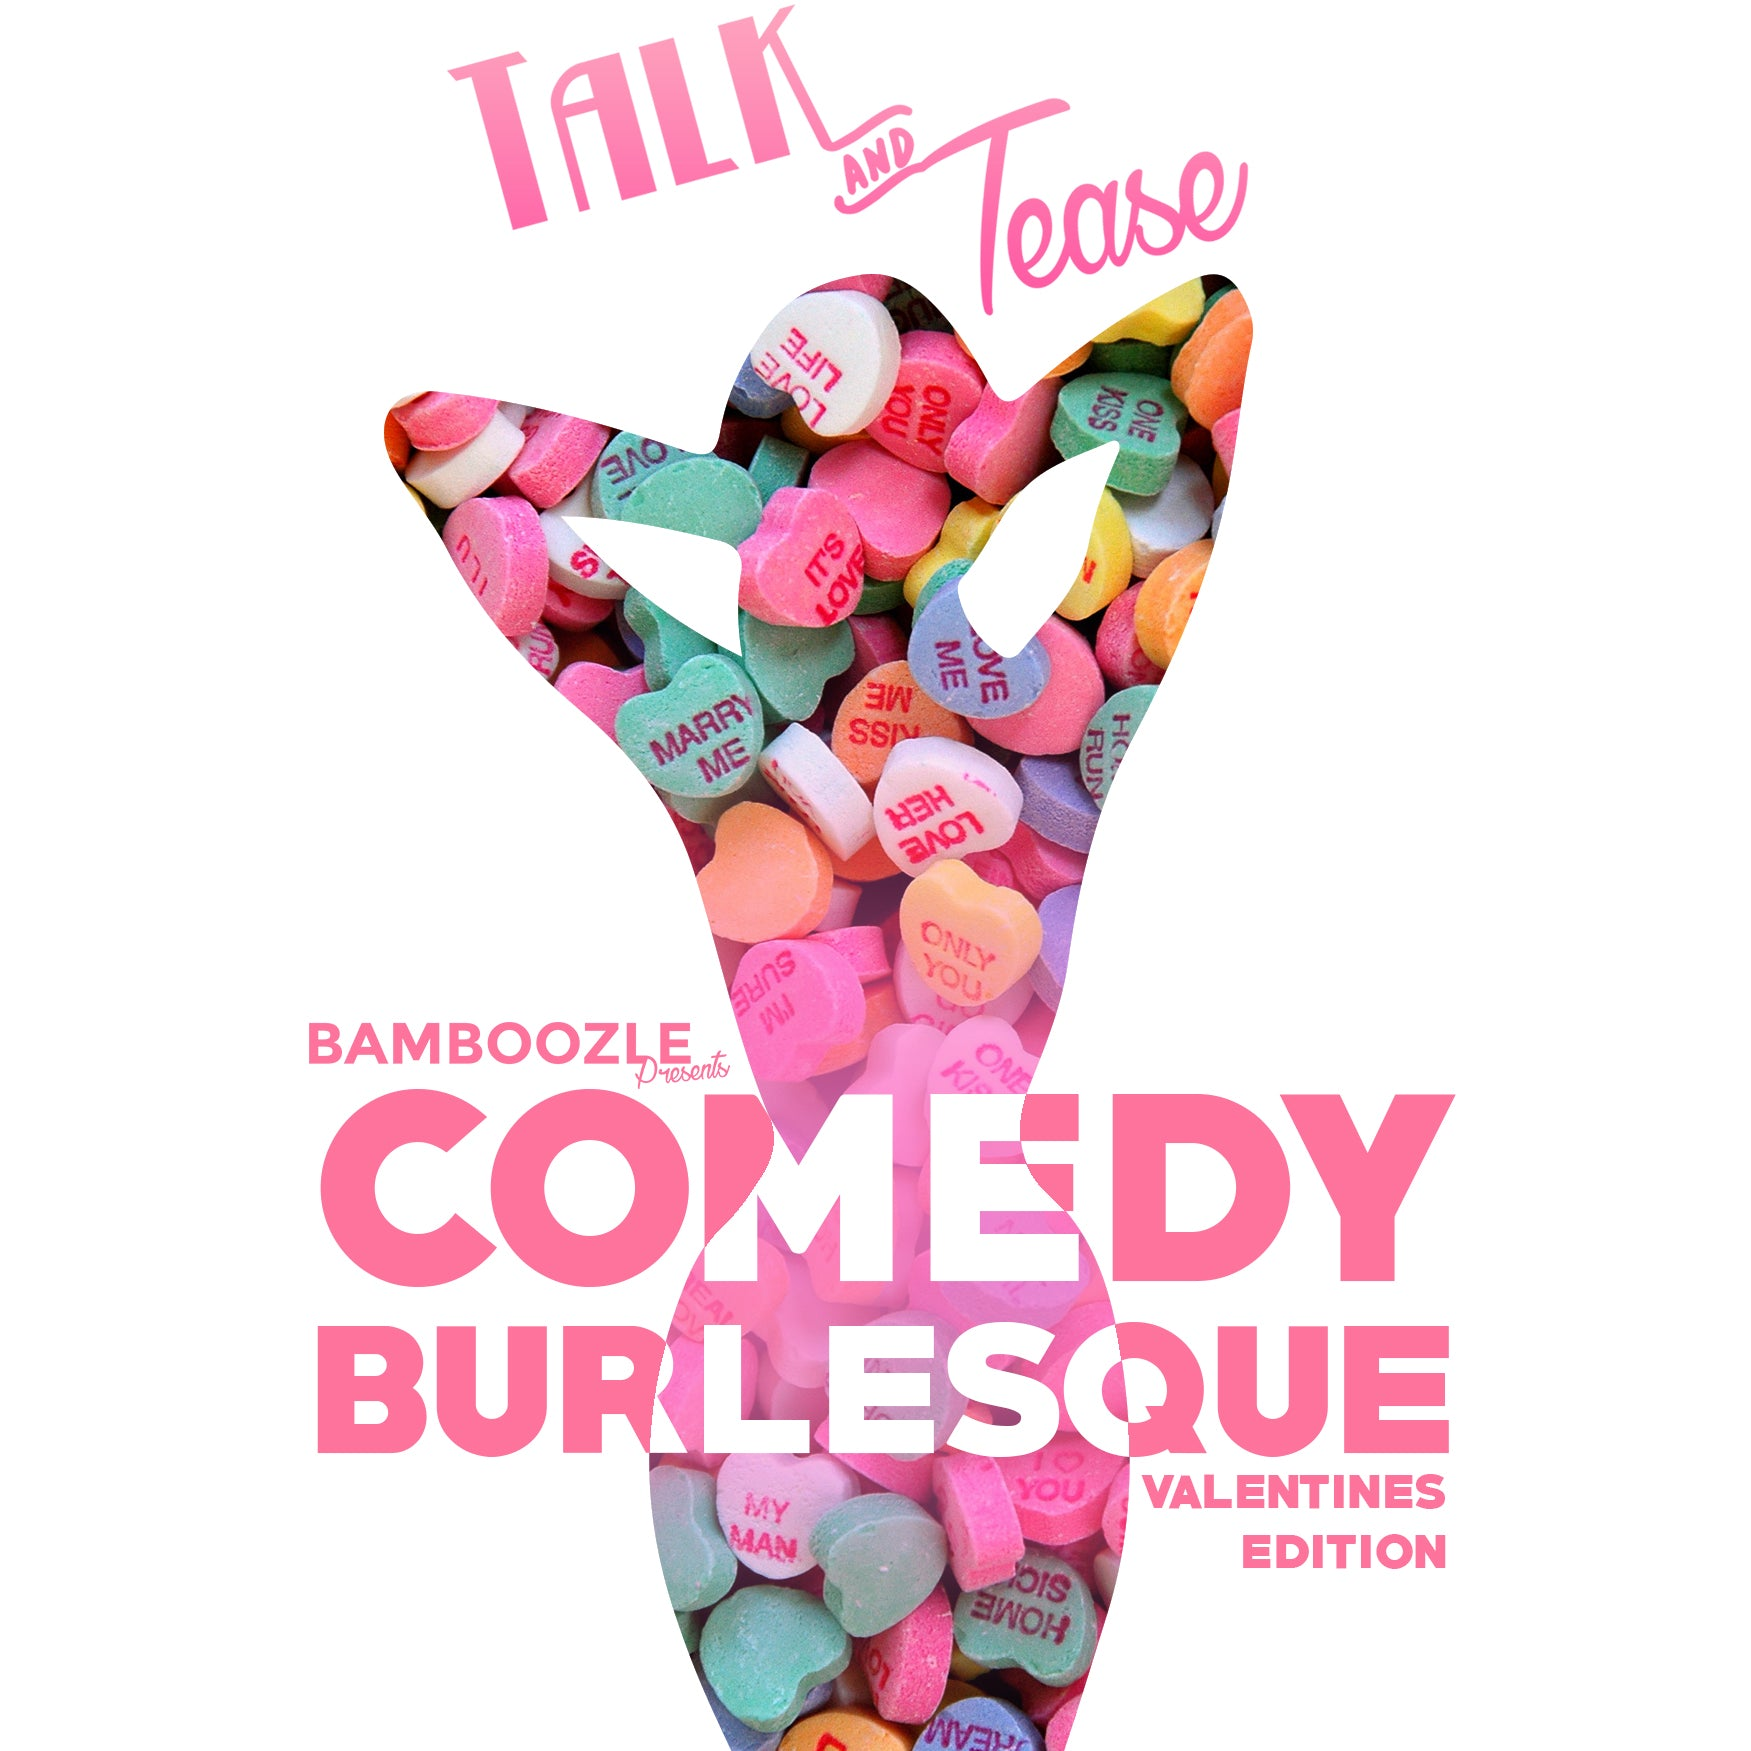 POSTPONED - Friday 27th March - Talk and Tease Comedy Burlesque - Dinner & Show - Tickets - Burlesque Sydney- The Bamboozle Room